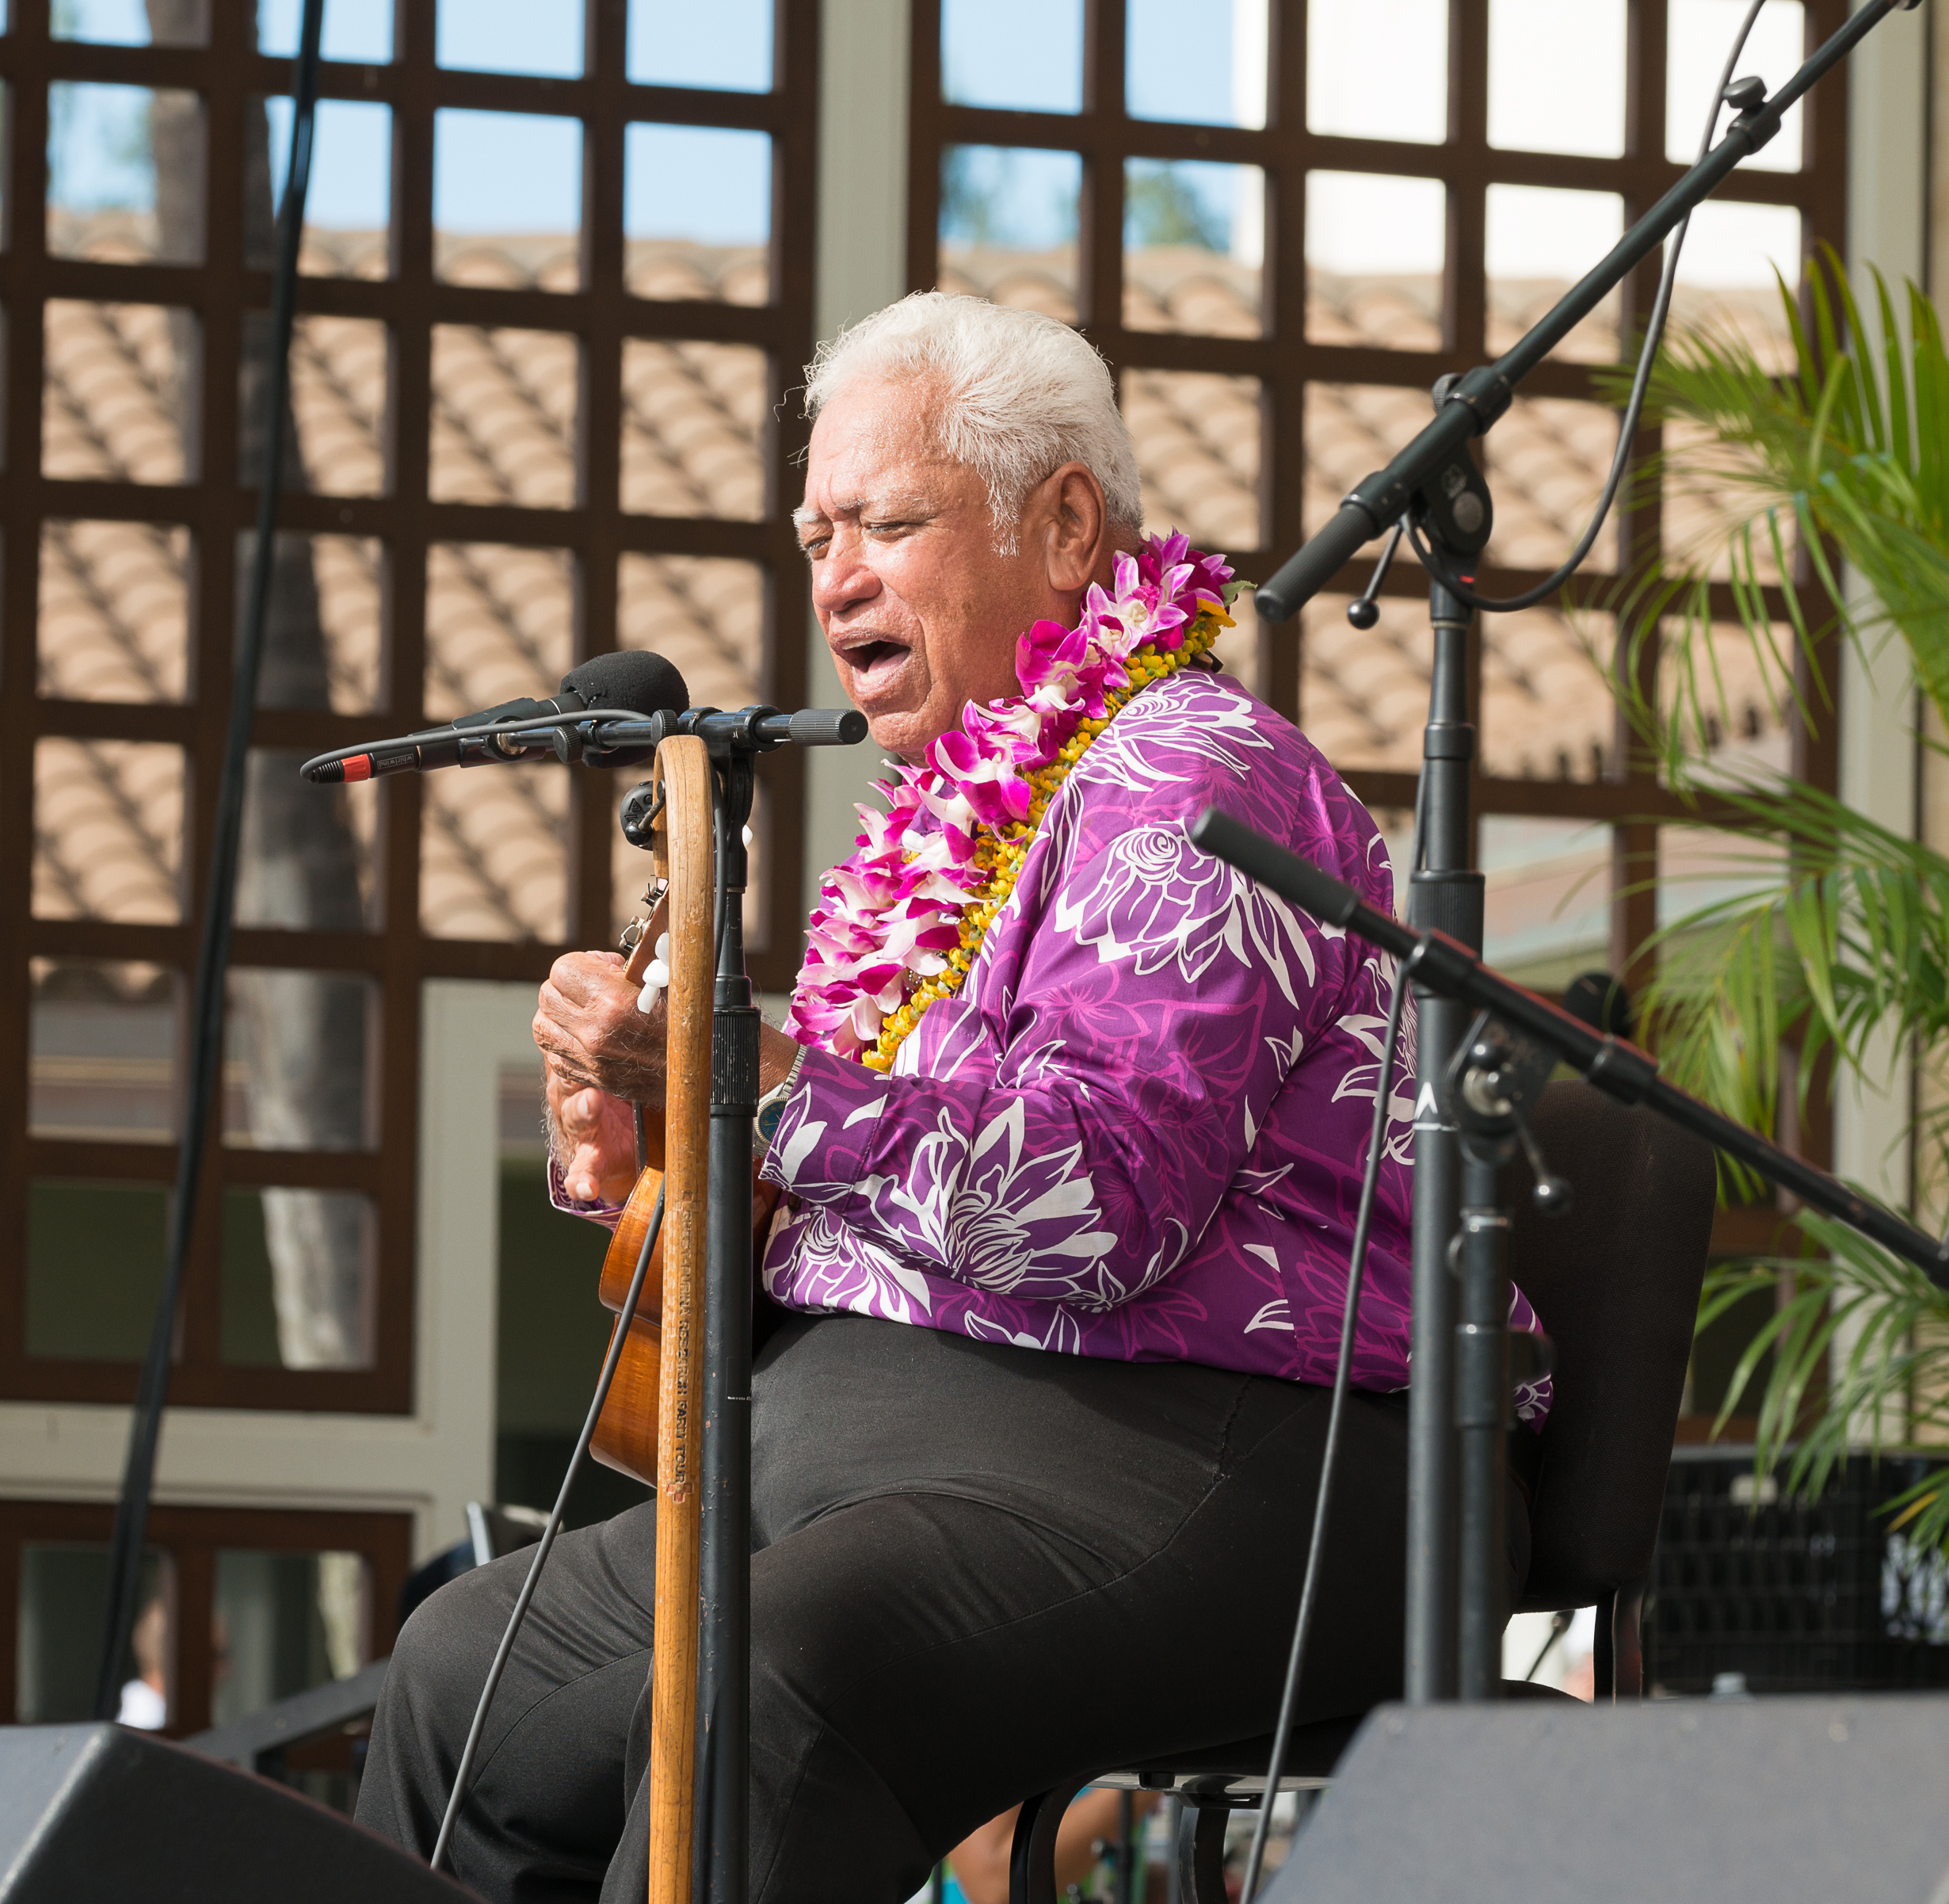 11th Annual Maui 'Ukulele Festival. PC: Richard Hoʻopiʻi, credit Aubrey Hord Photography.